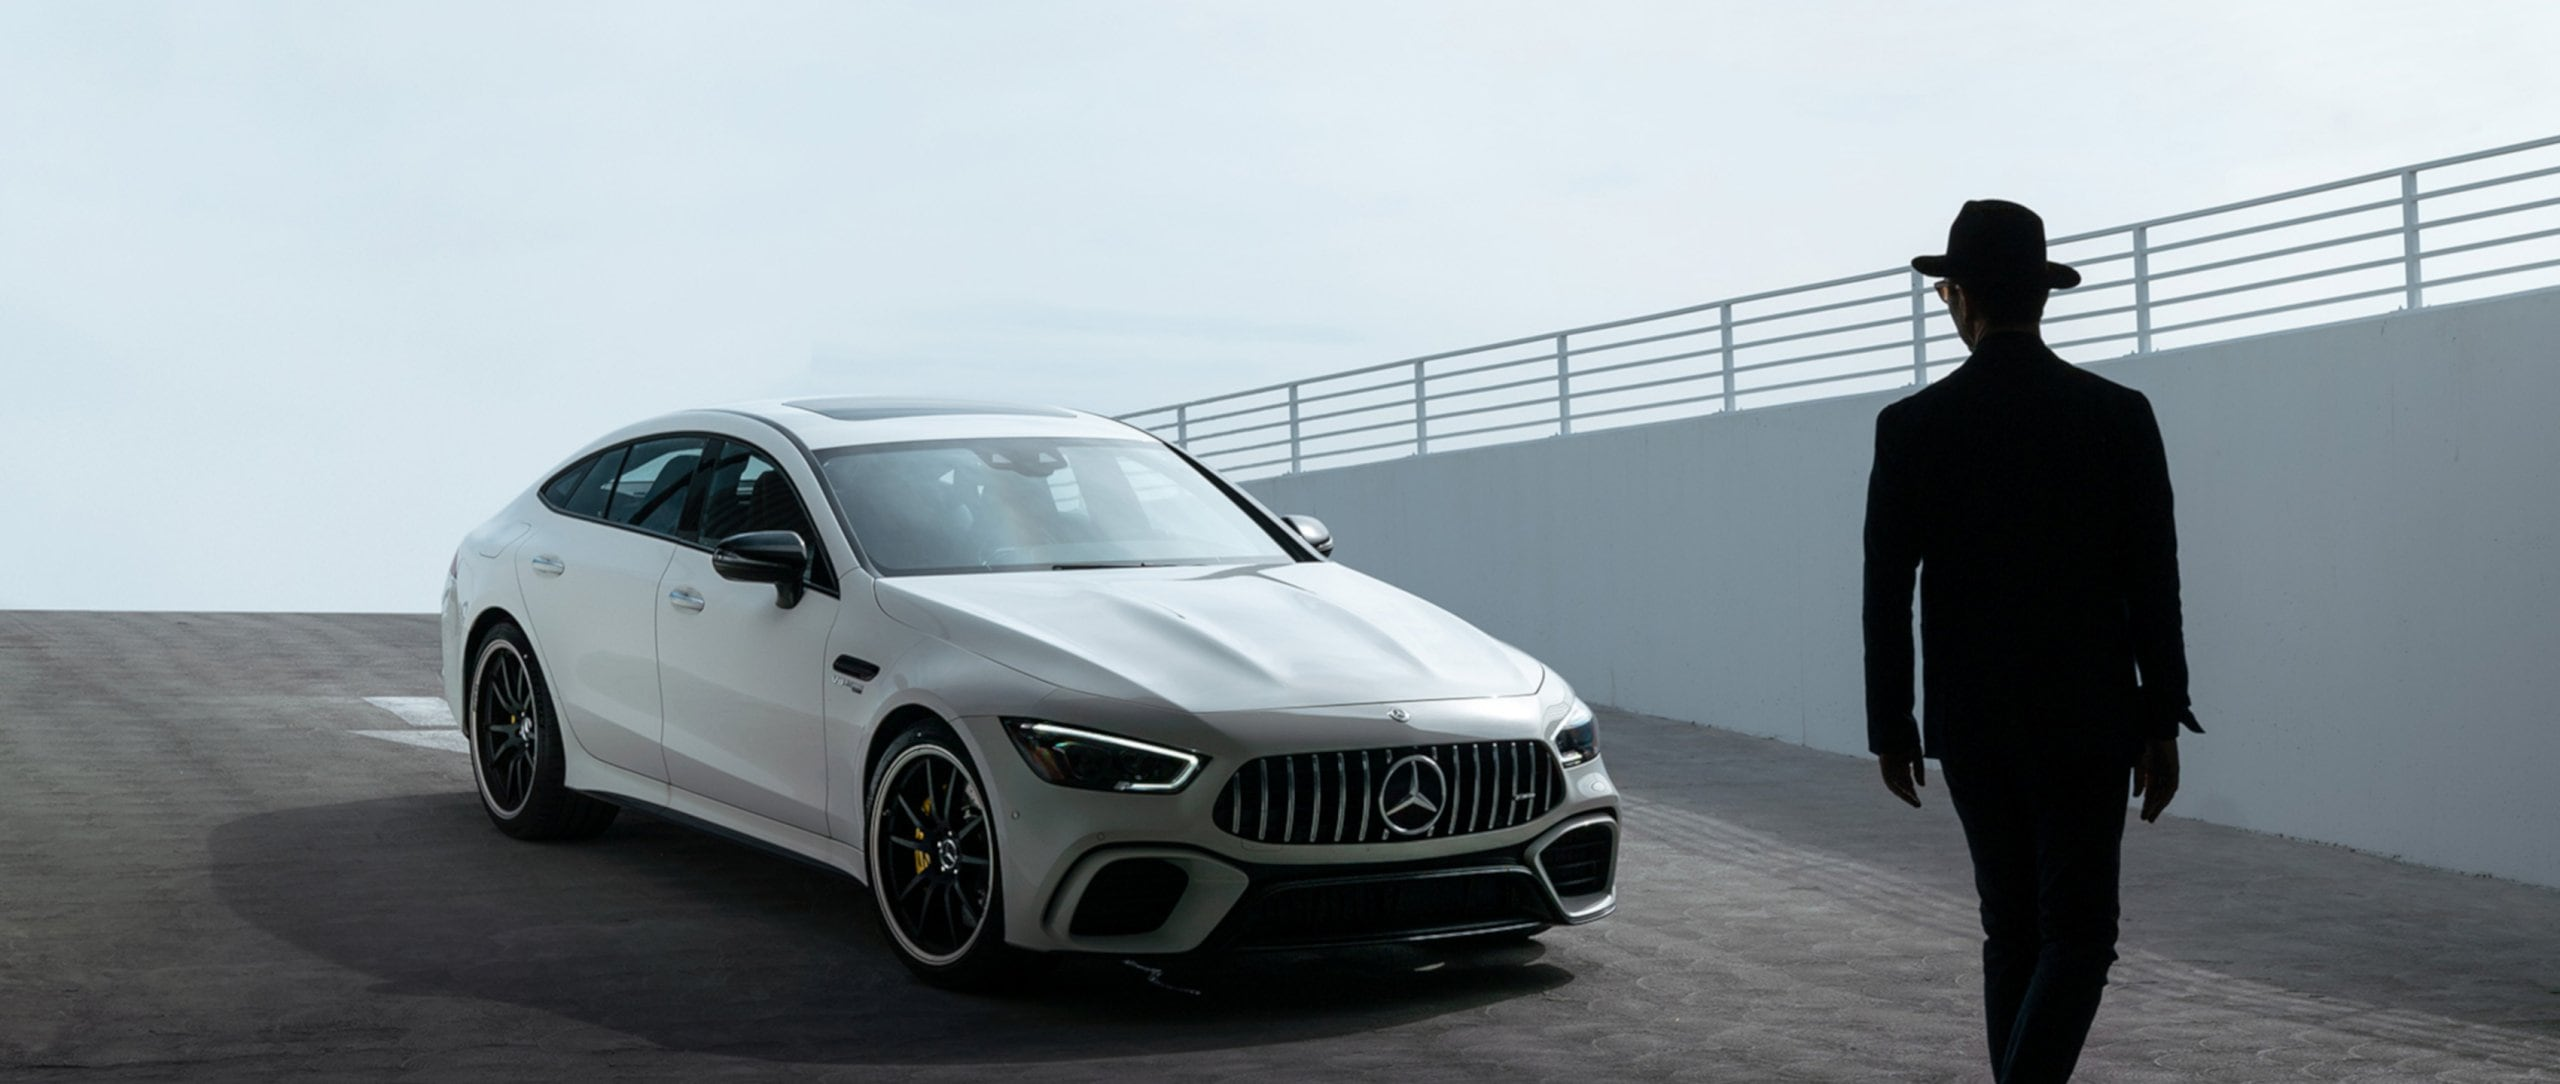 The Mercedes-AMG GT 63 S 4MATIC+ (X 290) in designo diamond white bright with 21-inch AMG 5-twin-spoke forged wheels painted in matt black with a high-sheen rim flange at the entry of an underground car park.